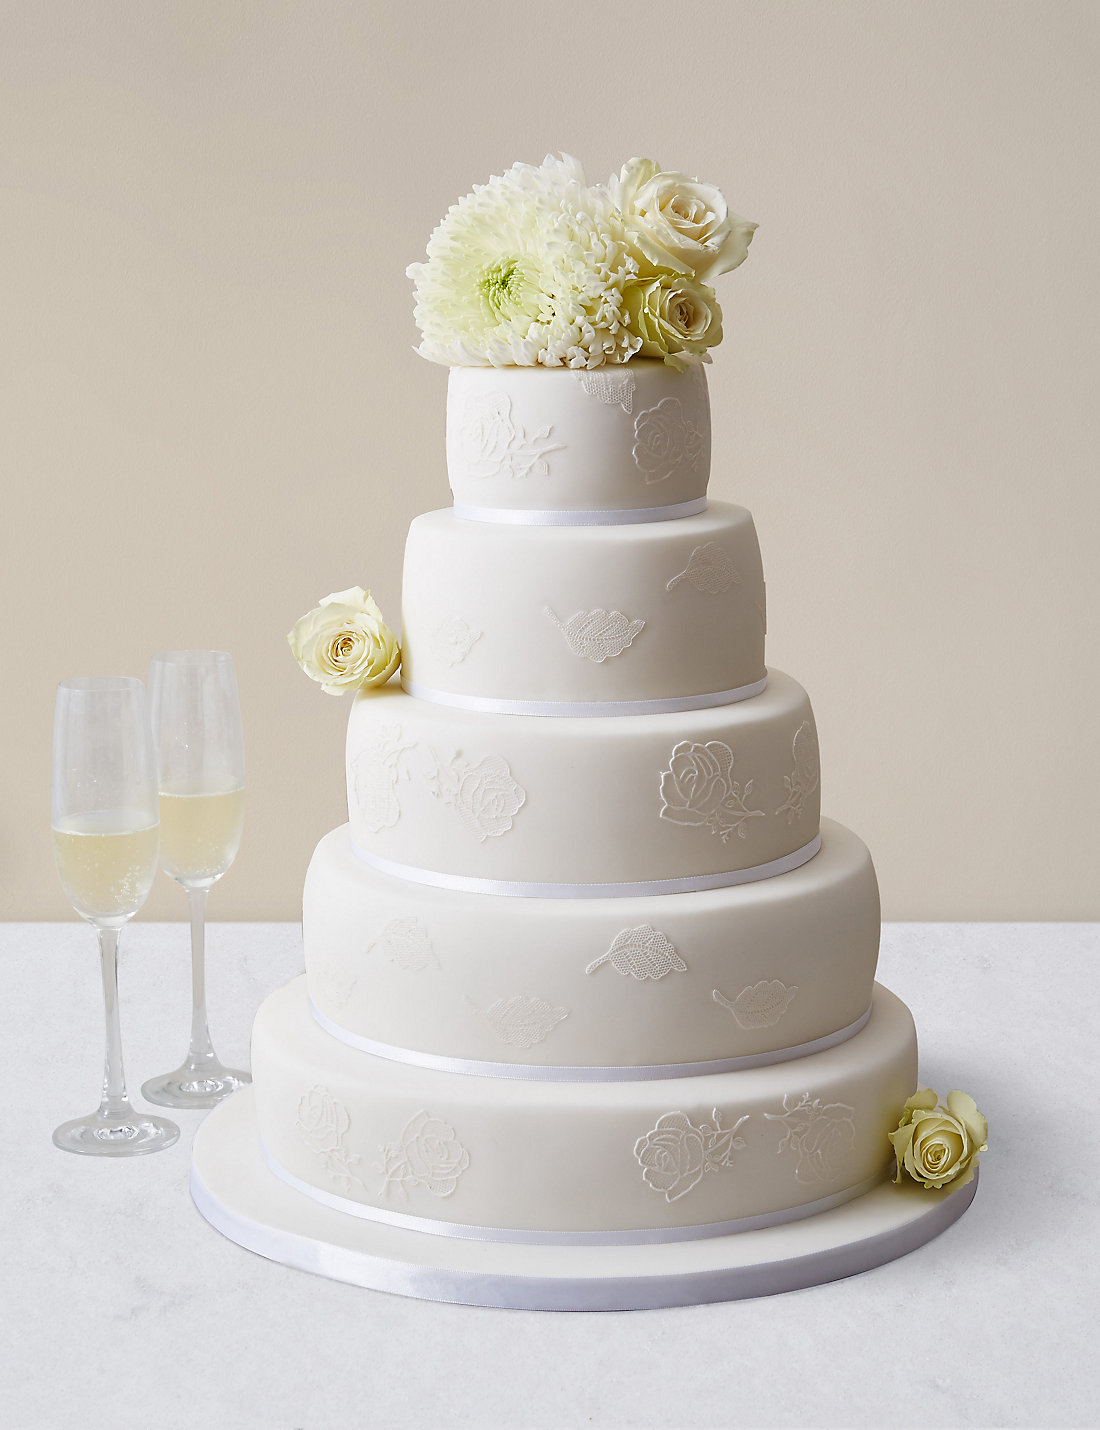 Tiered Cakes Elegant Tiered Wedding Cake MS - Wedding Cakes In Wakefield